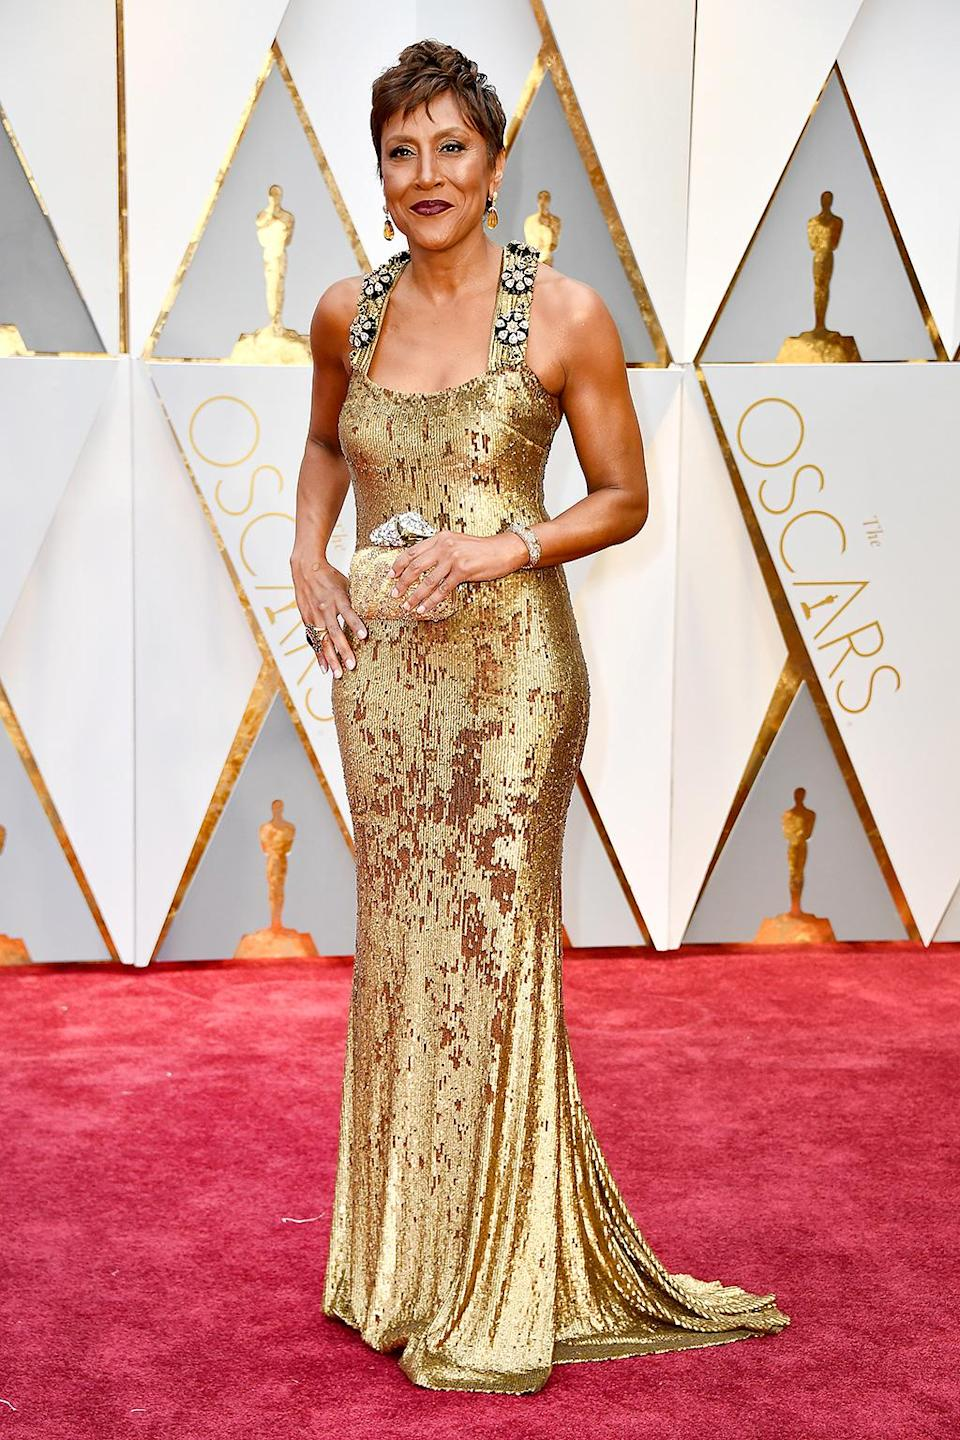 <p>TV personality Robin Roberts attends the 89th Annual Academy Awards at Hollywood & Highland Center on February 26, 2017 in Hollywood, California. (Photo by Frazer Harrison/Getty Images) </p>